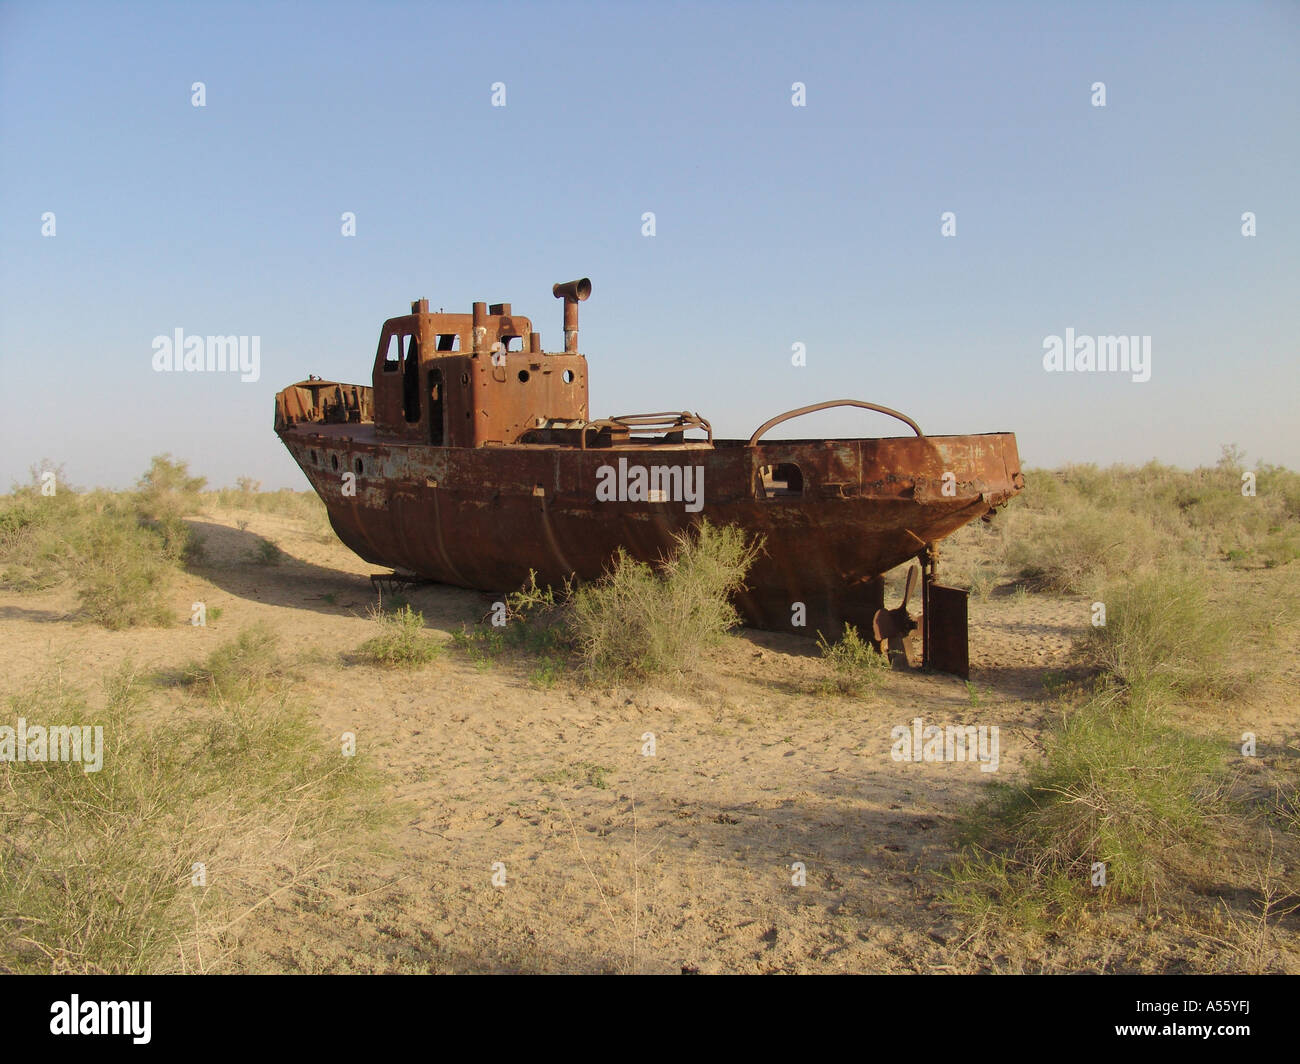 Painet iw2418 central asia disaster environment soviet union images islam moslem silk road uzbekistan beached fishing - Stock Image